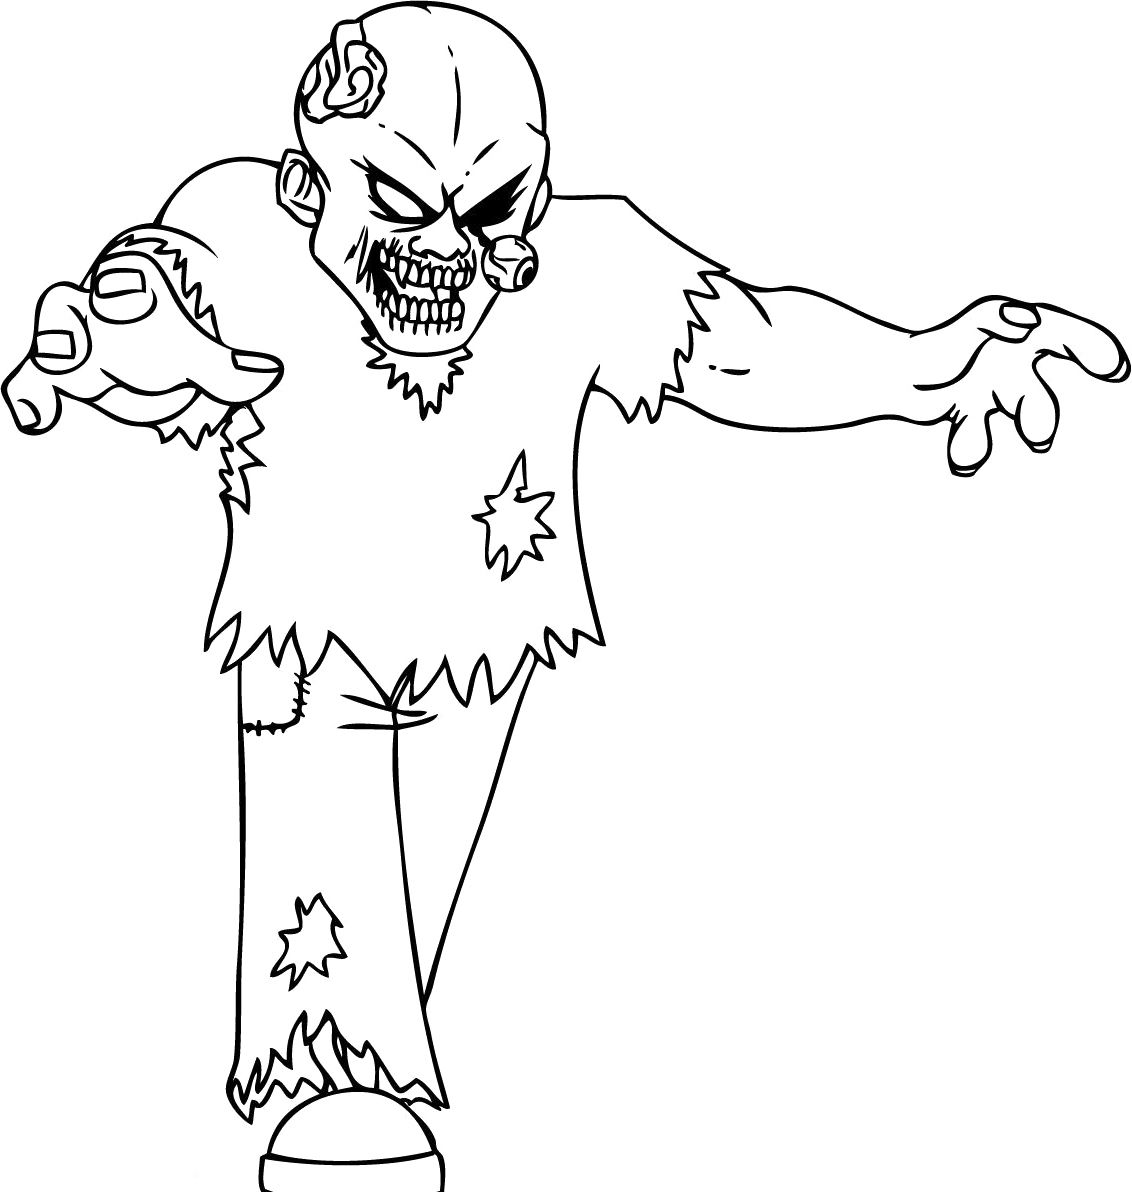 Disney Channel Zombies Coloring Pages - Learning How to Read